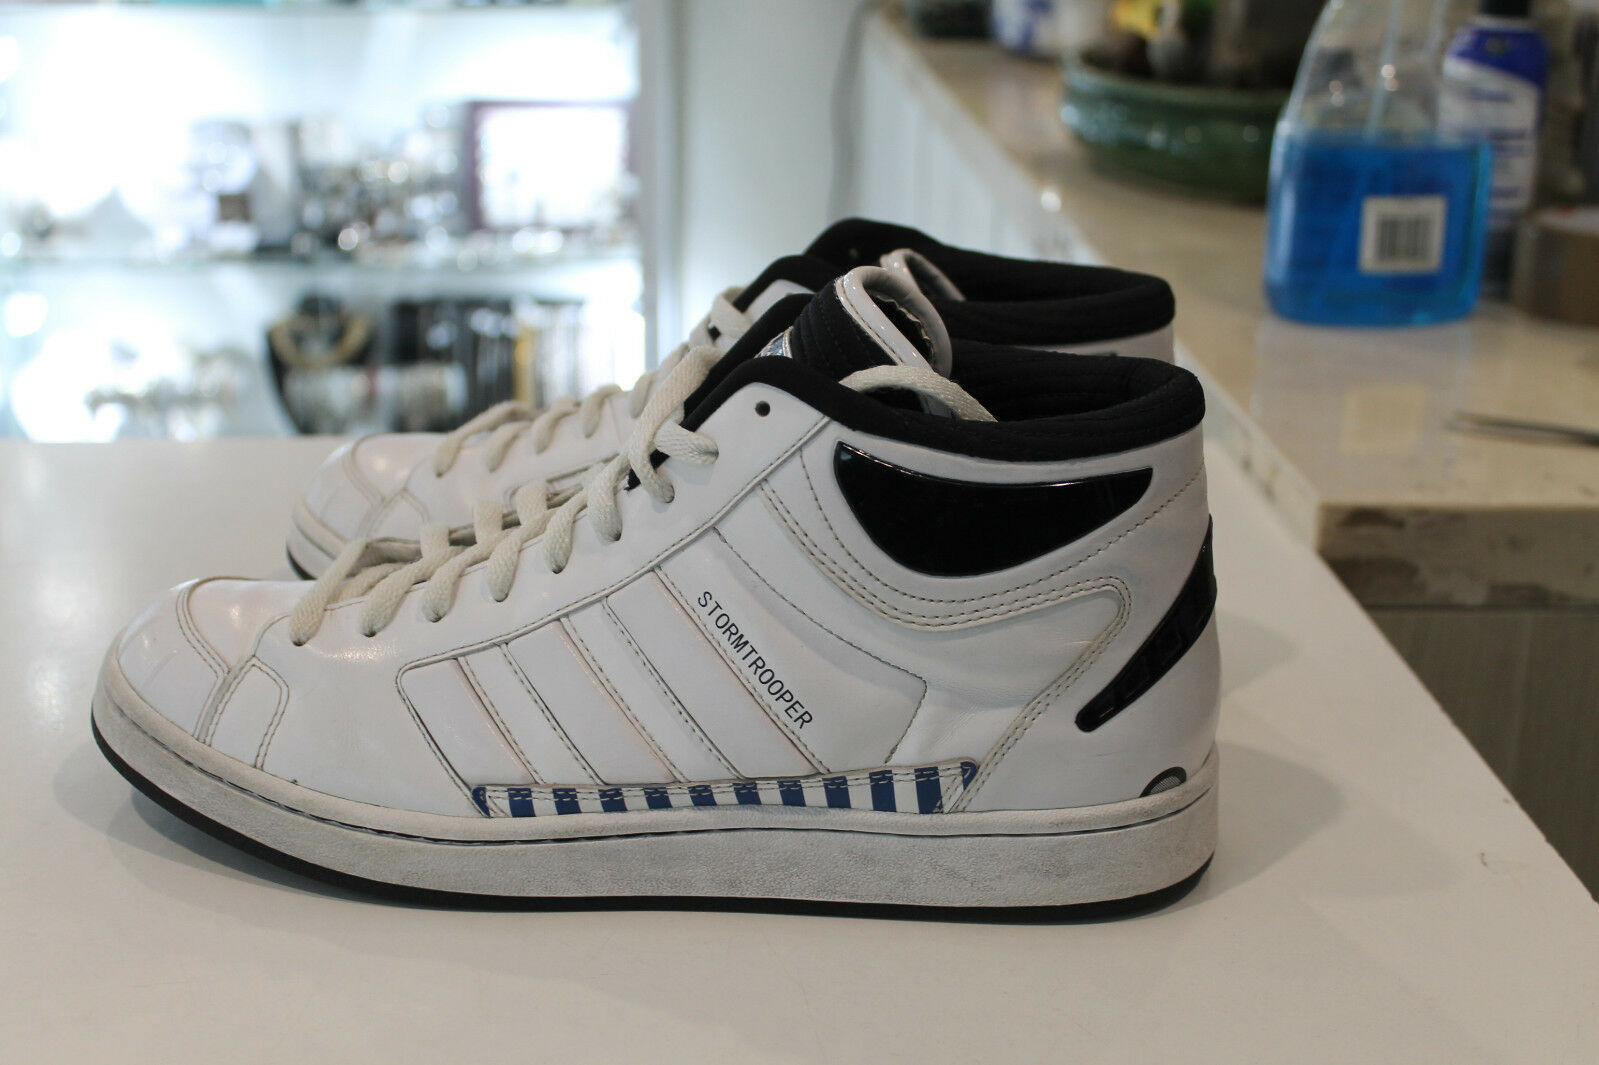 newest 09c11 095ff ...  Pre-owned  Adidas Adidas Adidas Stormtrooper size 10UK    ...